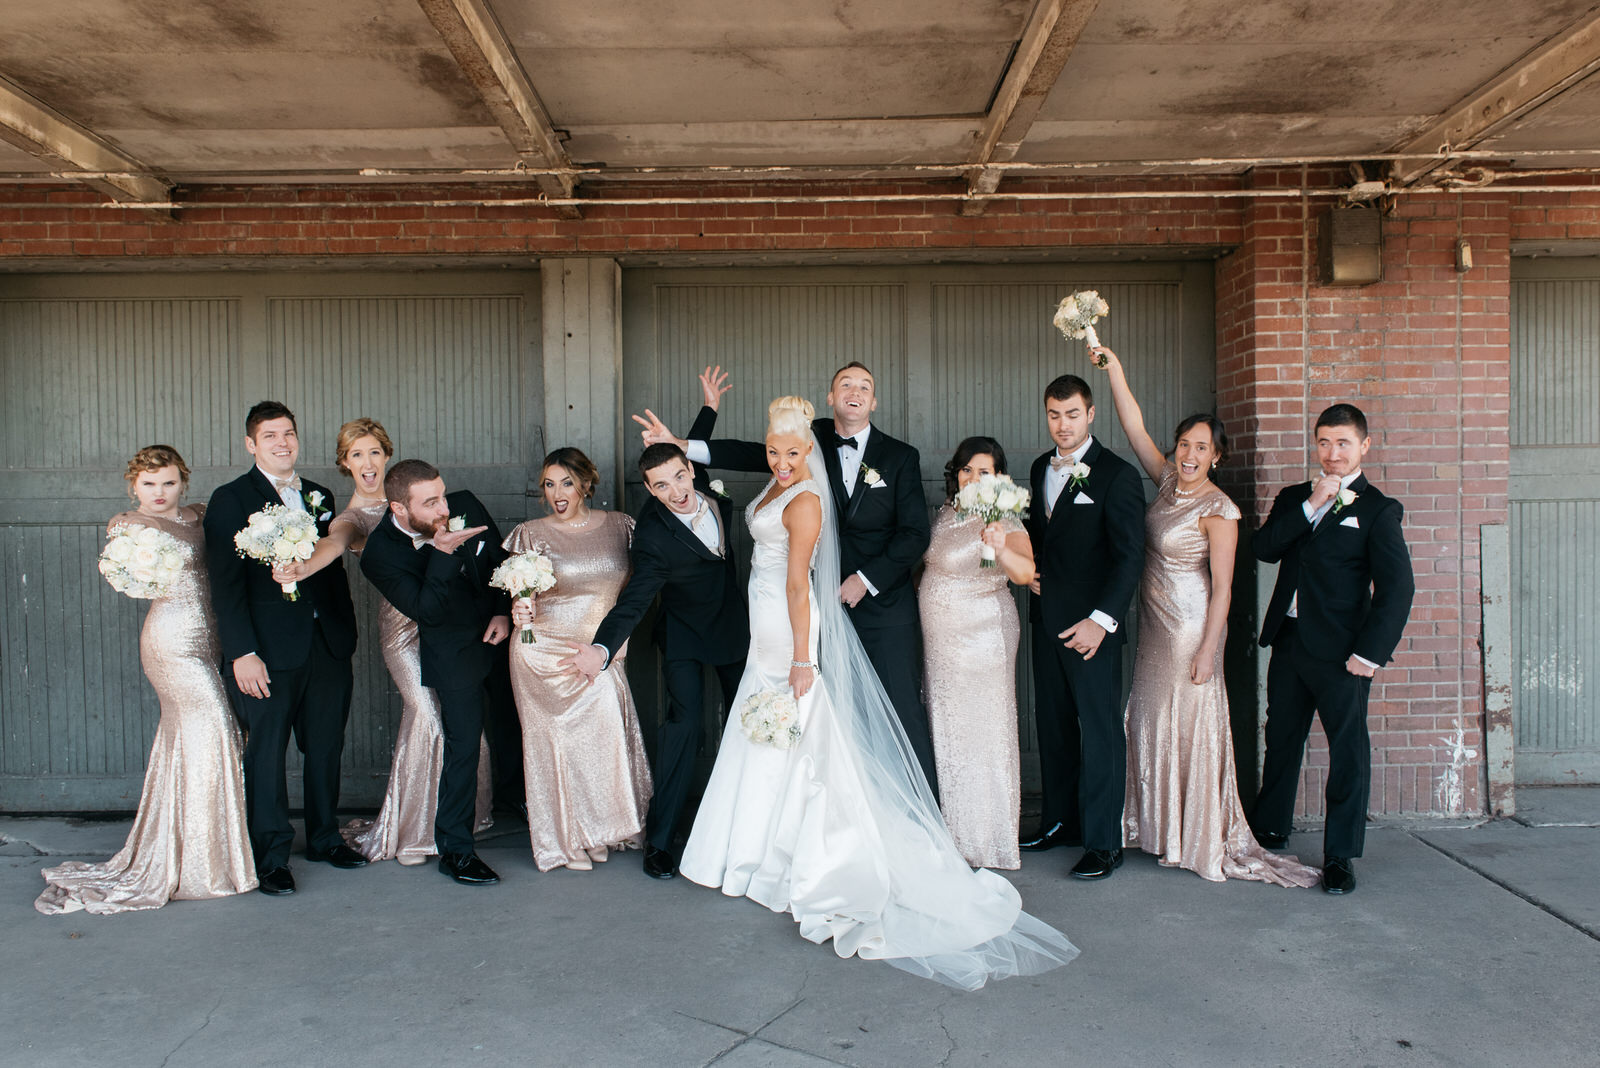 hilton_garden_inn_southpointe_pittsburgh_weddings_53.jpg